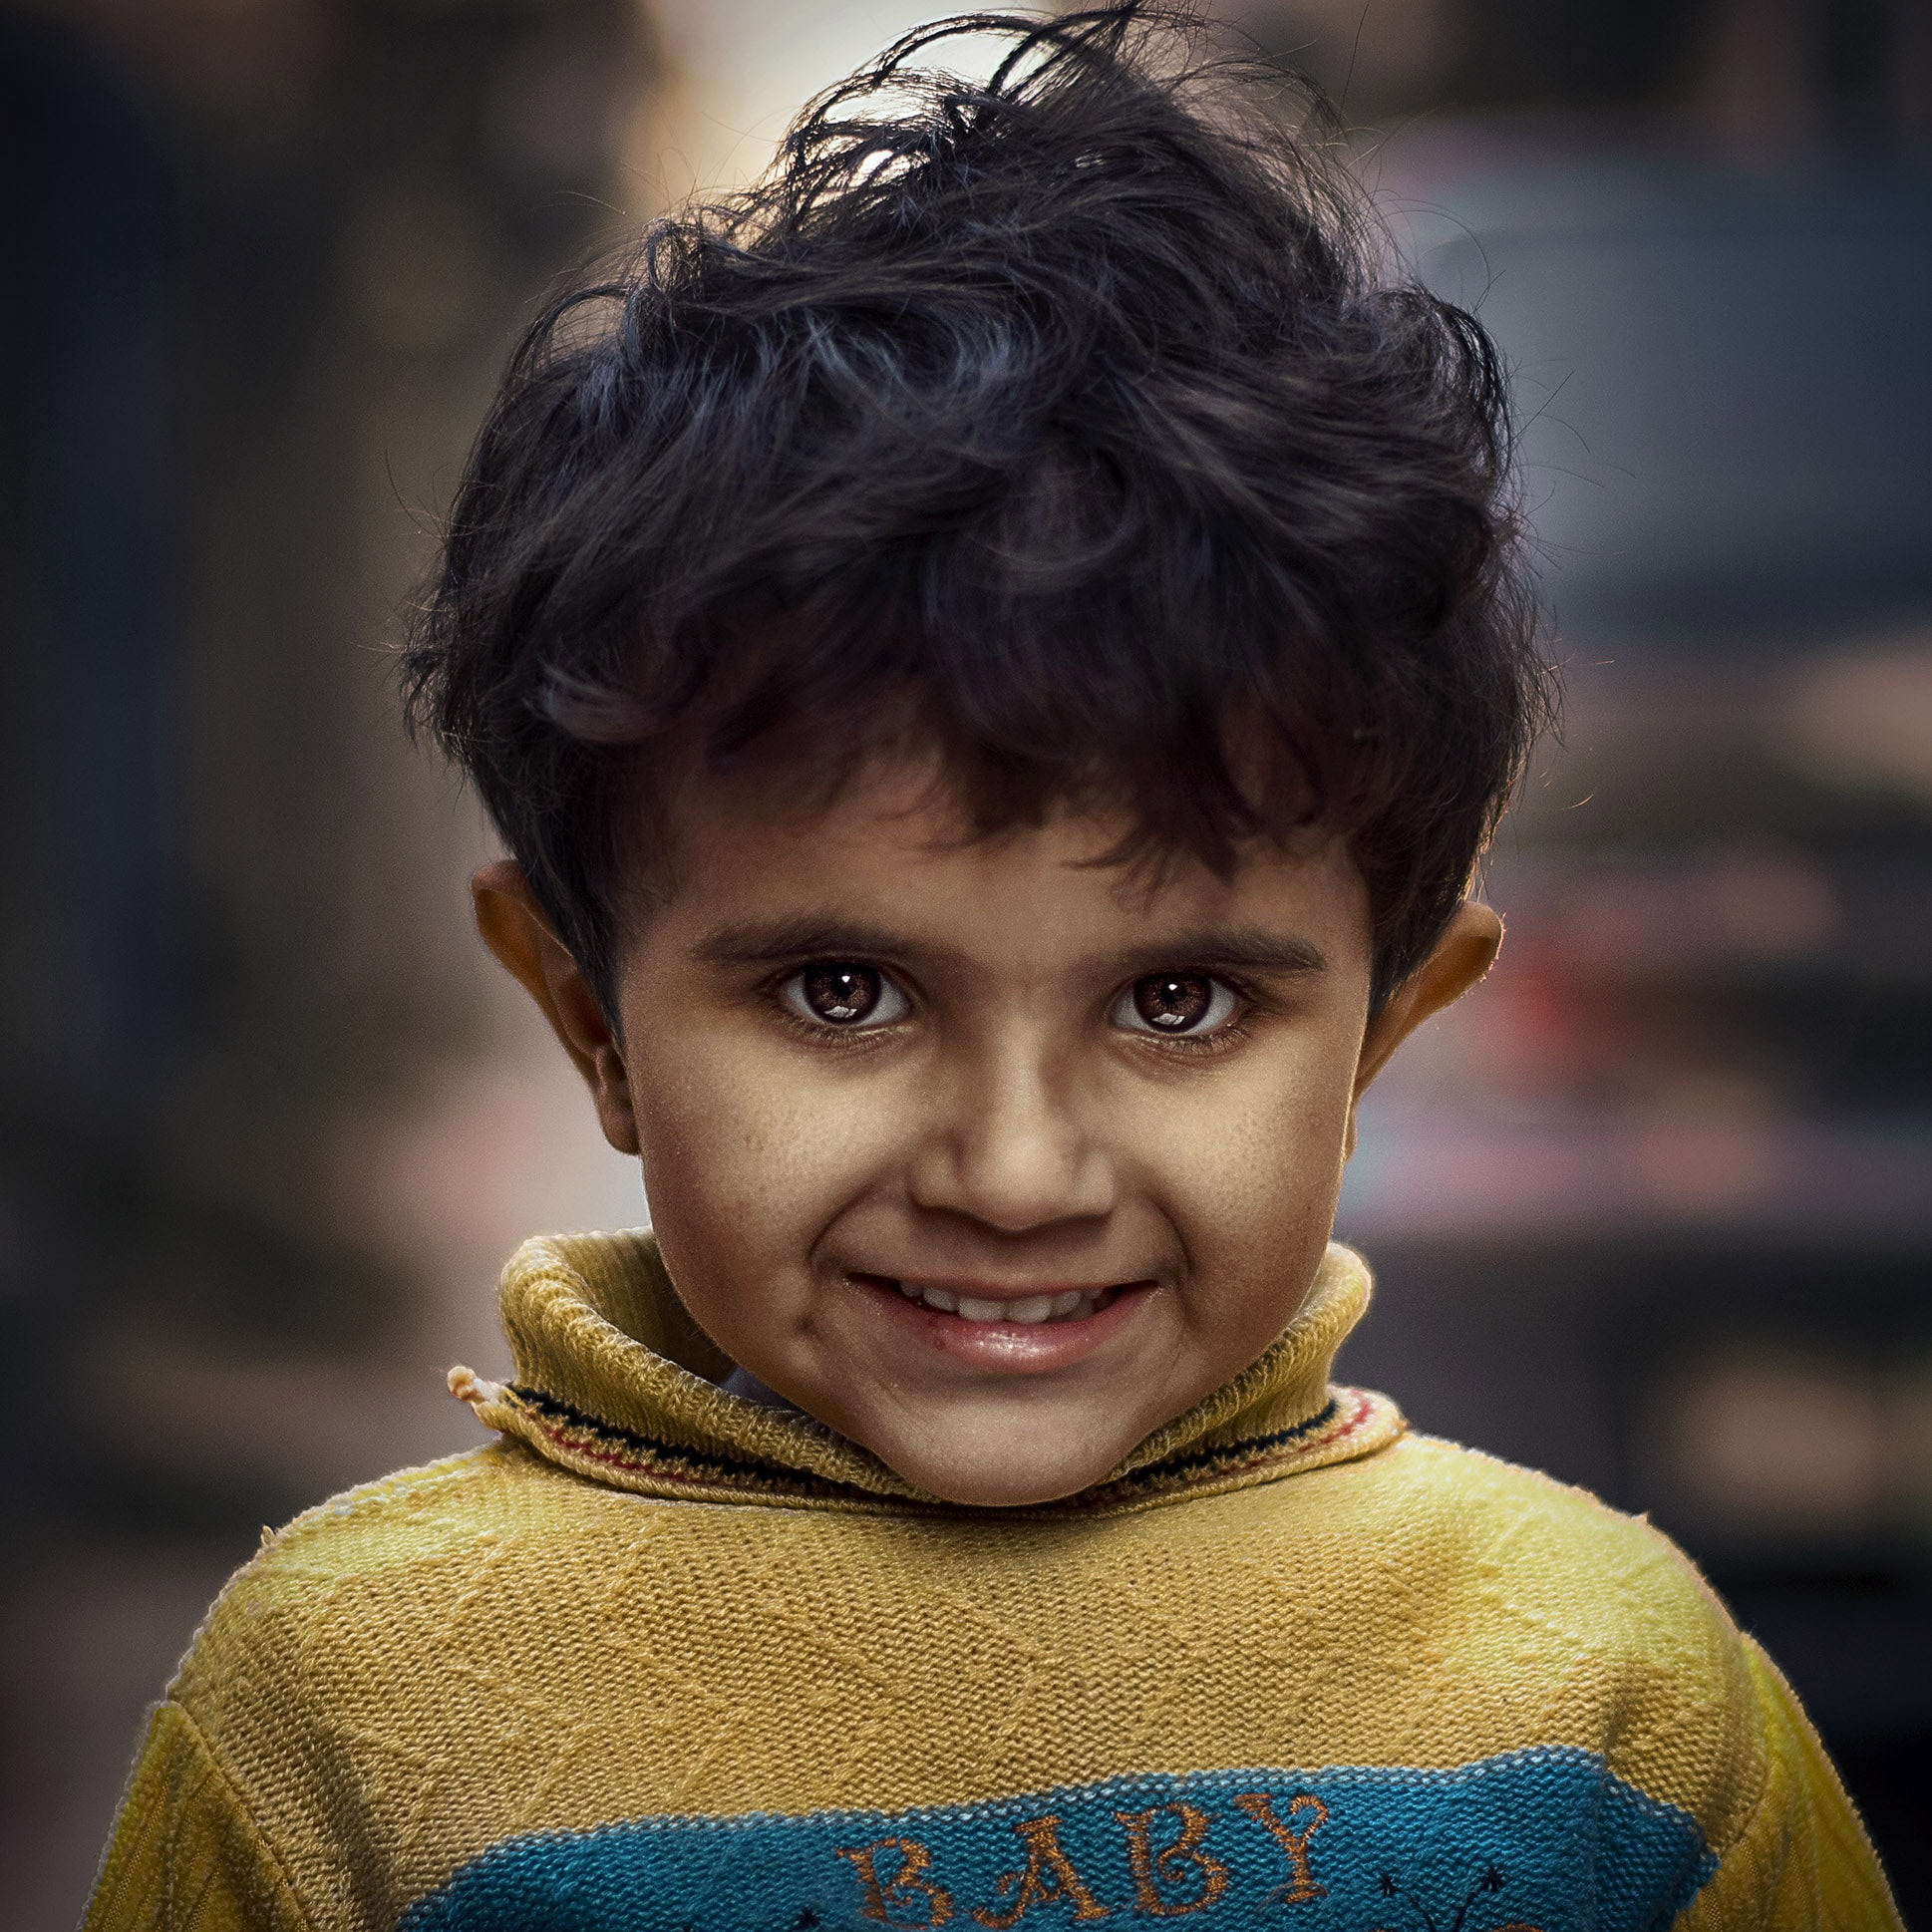 boy wearing yellow sweater selective focus photography